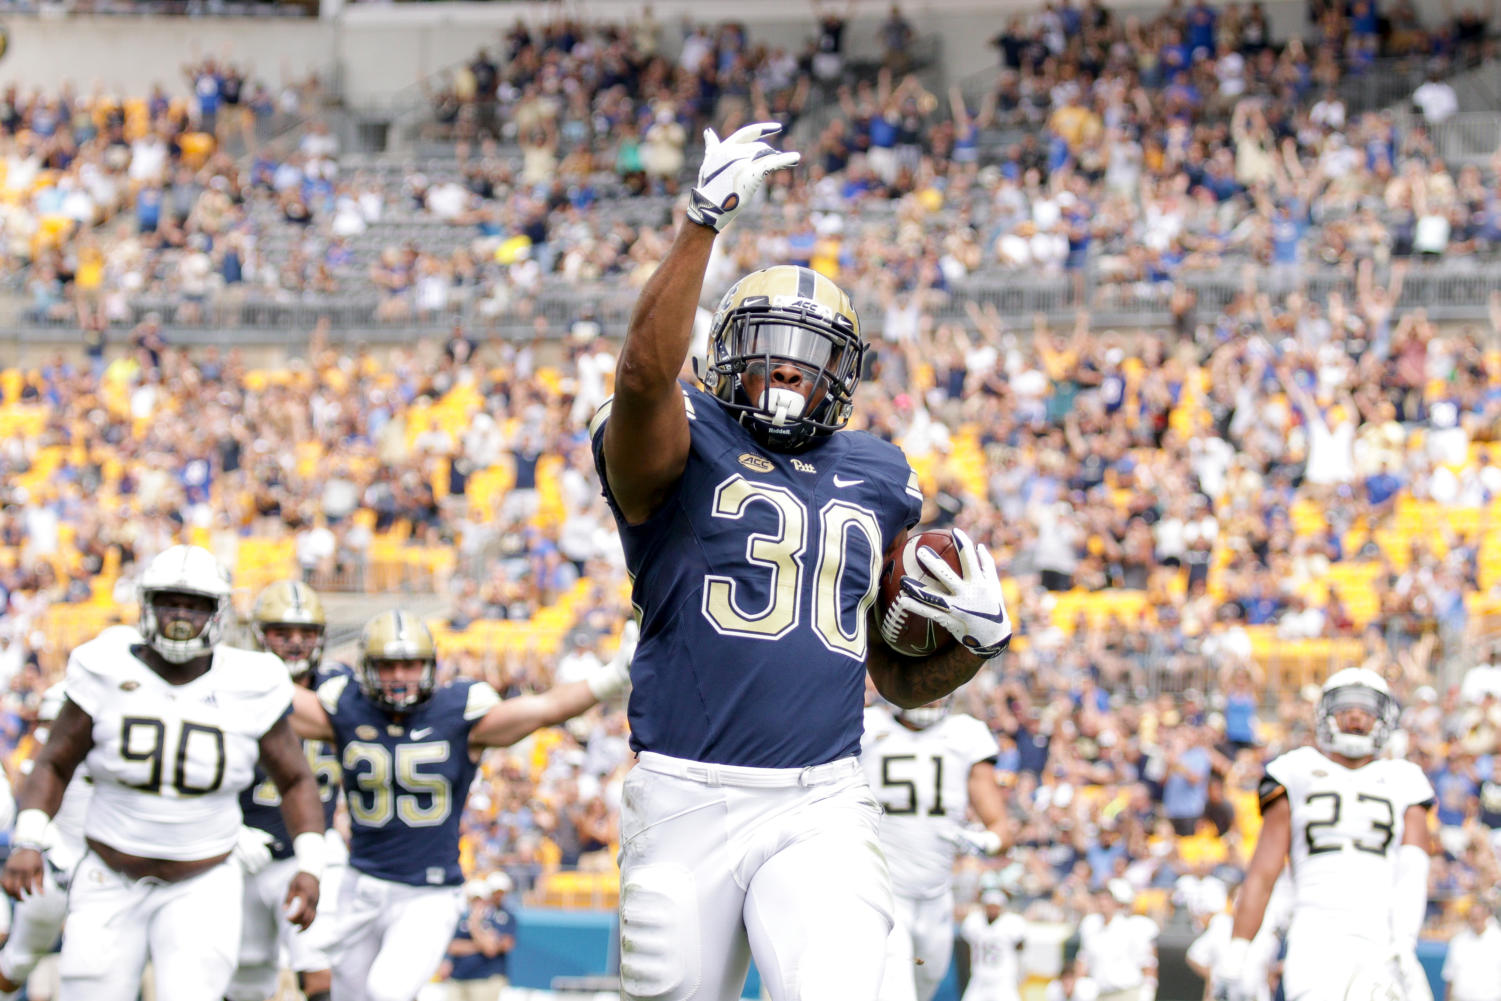 Redshirt senior running back Qadree Ollison (30) celebrates after running for Pitt's first touchdown against Georgia Tech.